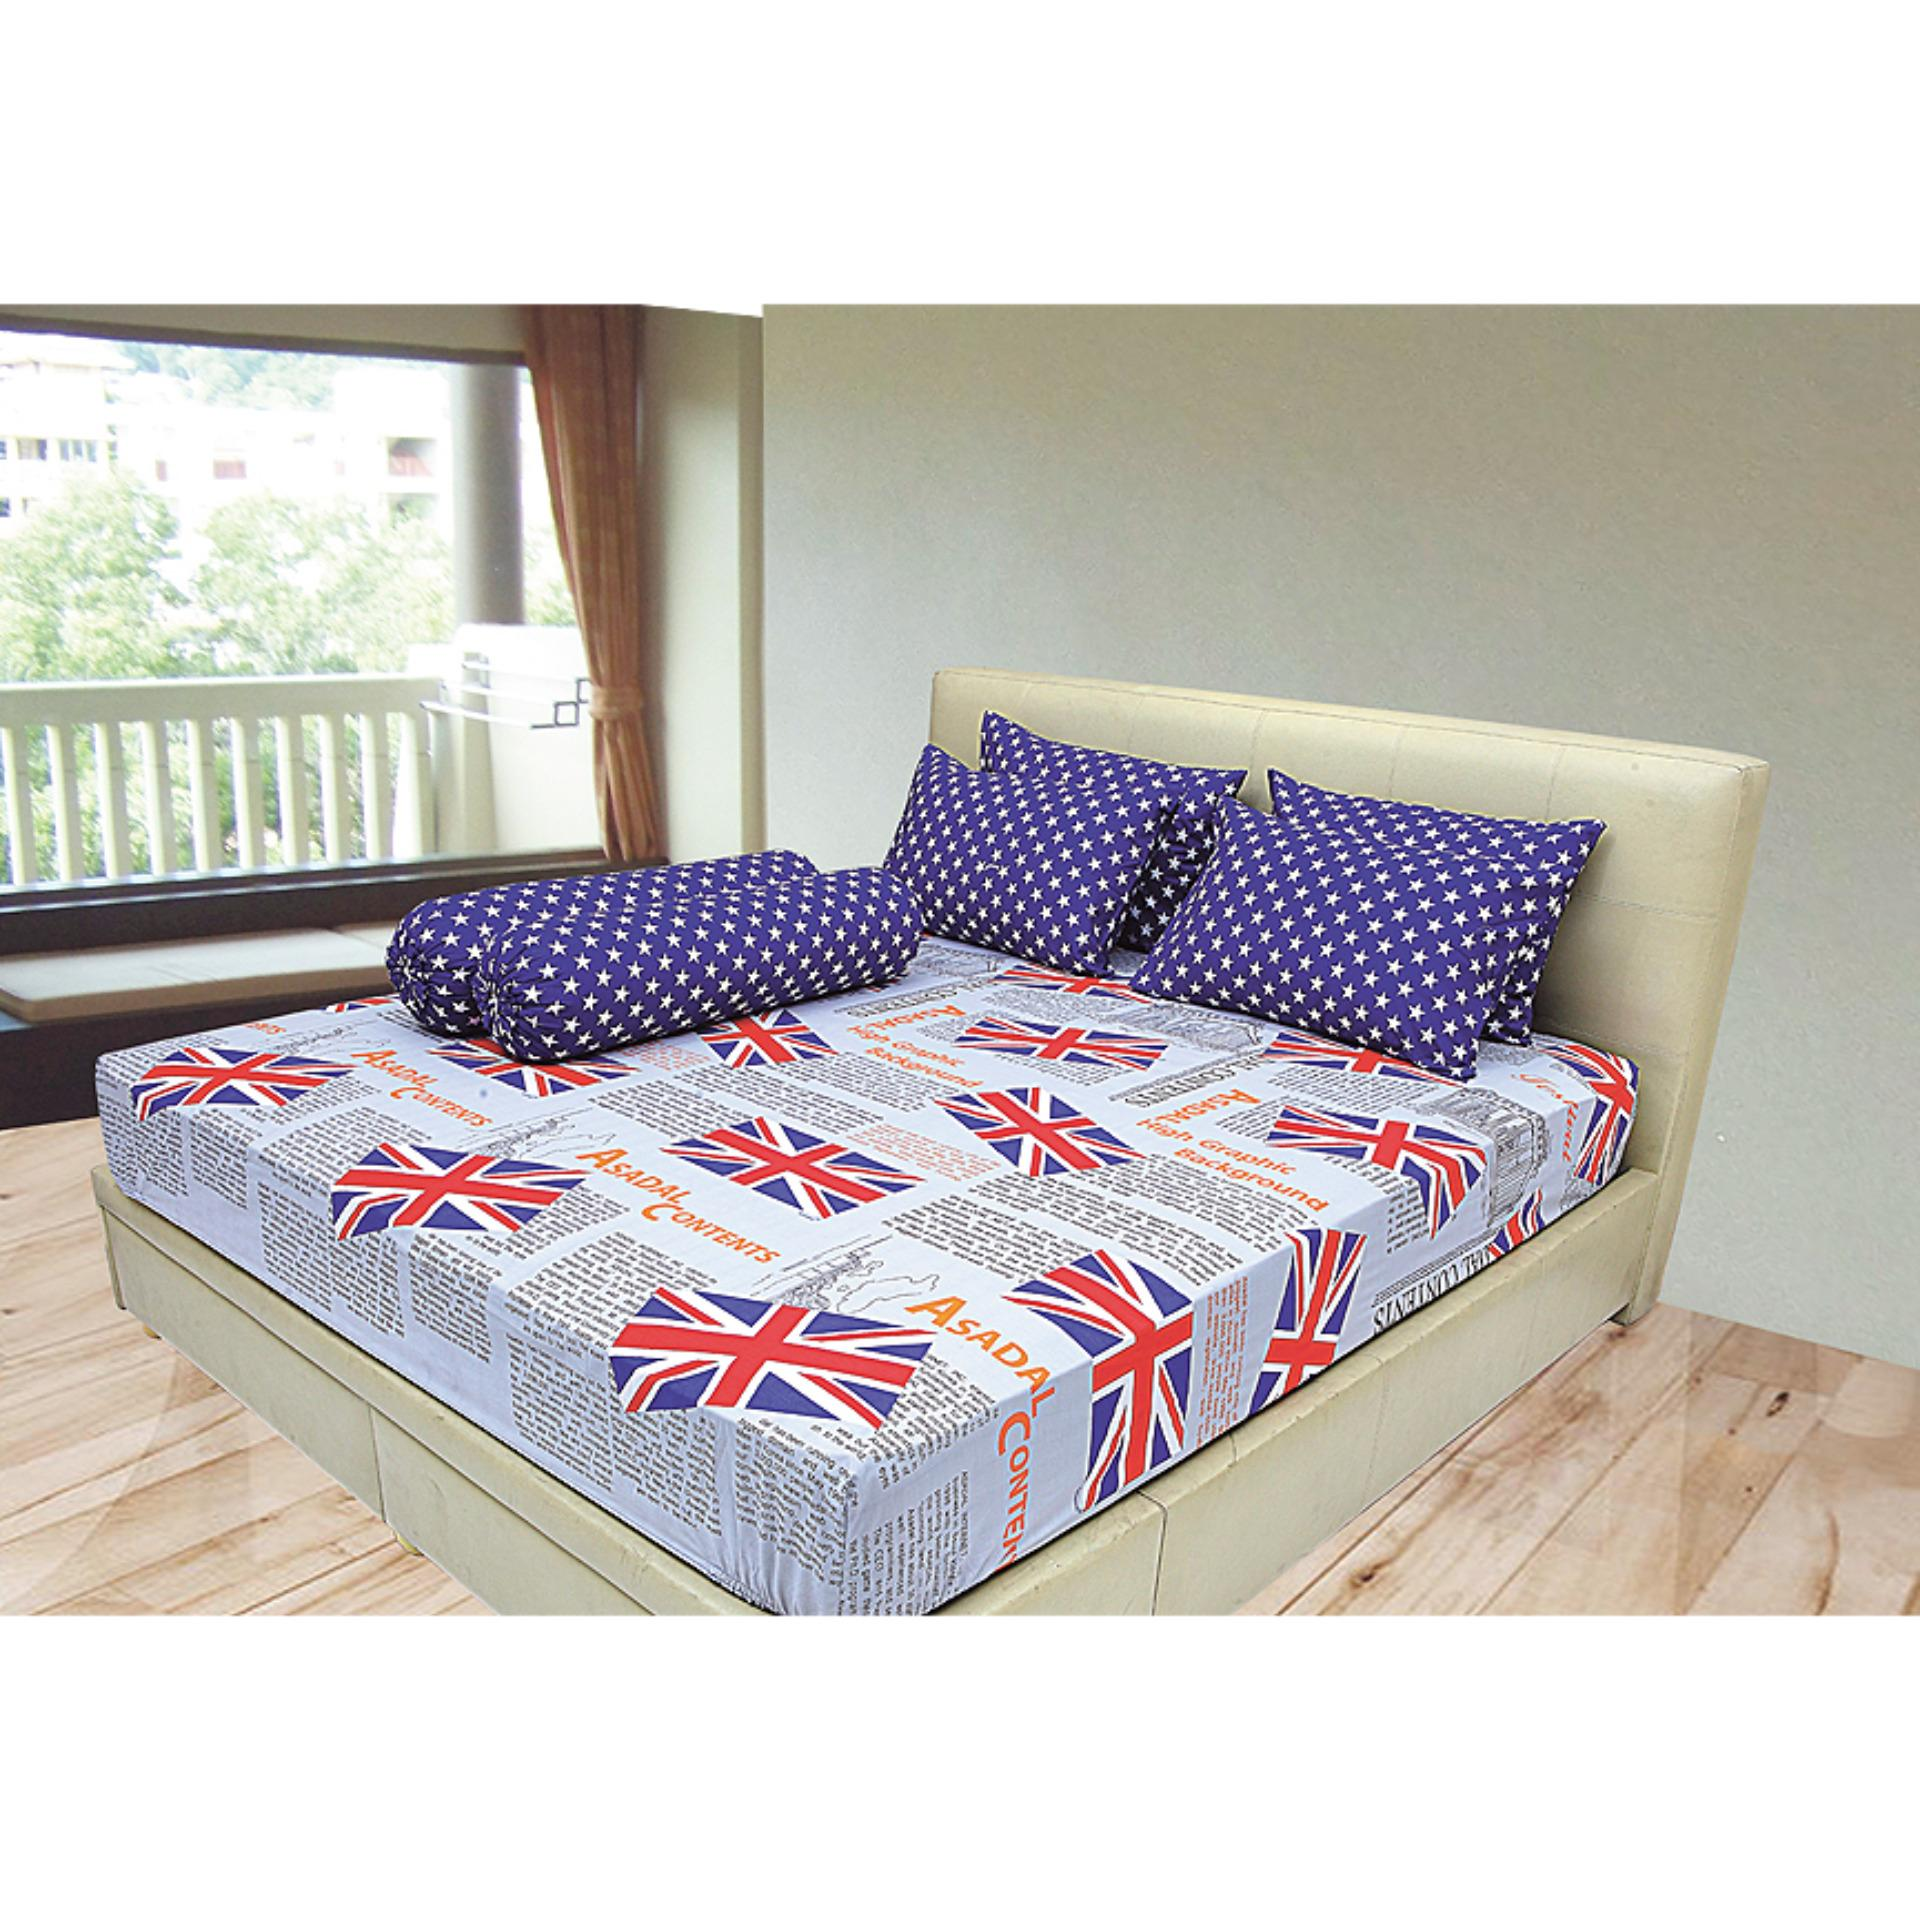 Sprei Internal King B2 Little Twin Star Referensi Daftar Harga Kintakun Rumbai Bantal Busa Rbb Dluxe 180 X 200 Anita Hot Deals